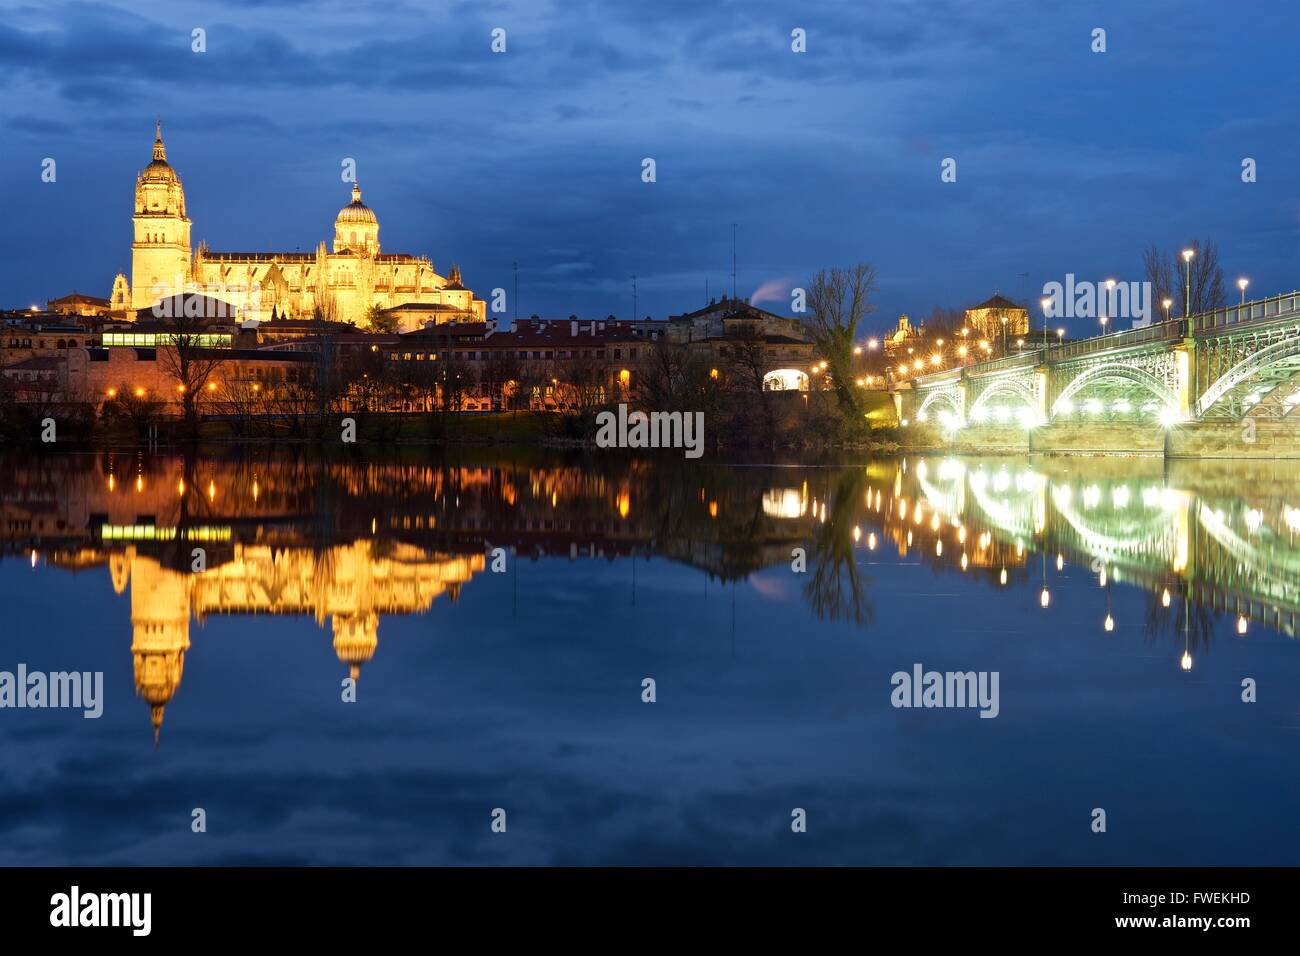 Salamanca Cathedral and still water reflections of it lit up at night - Stock Image